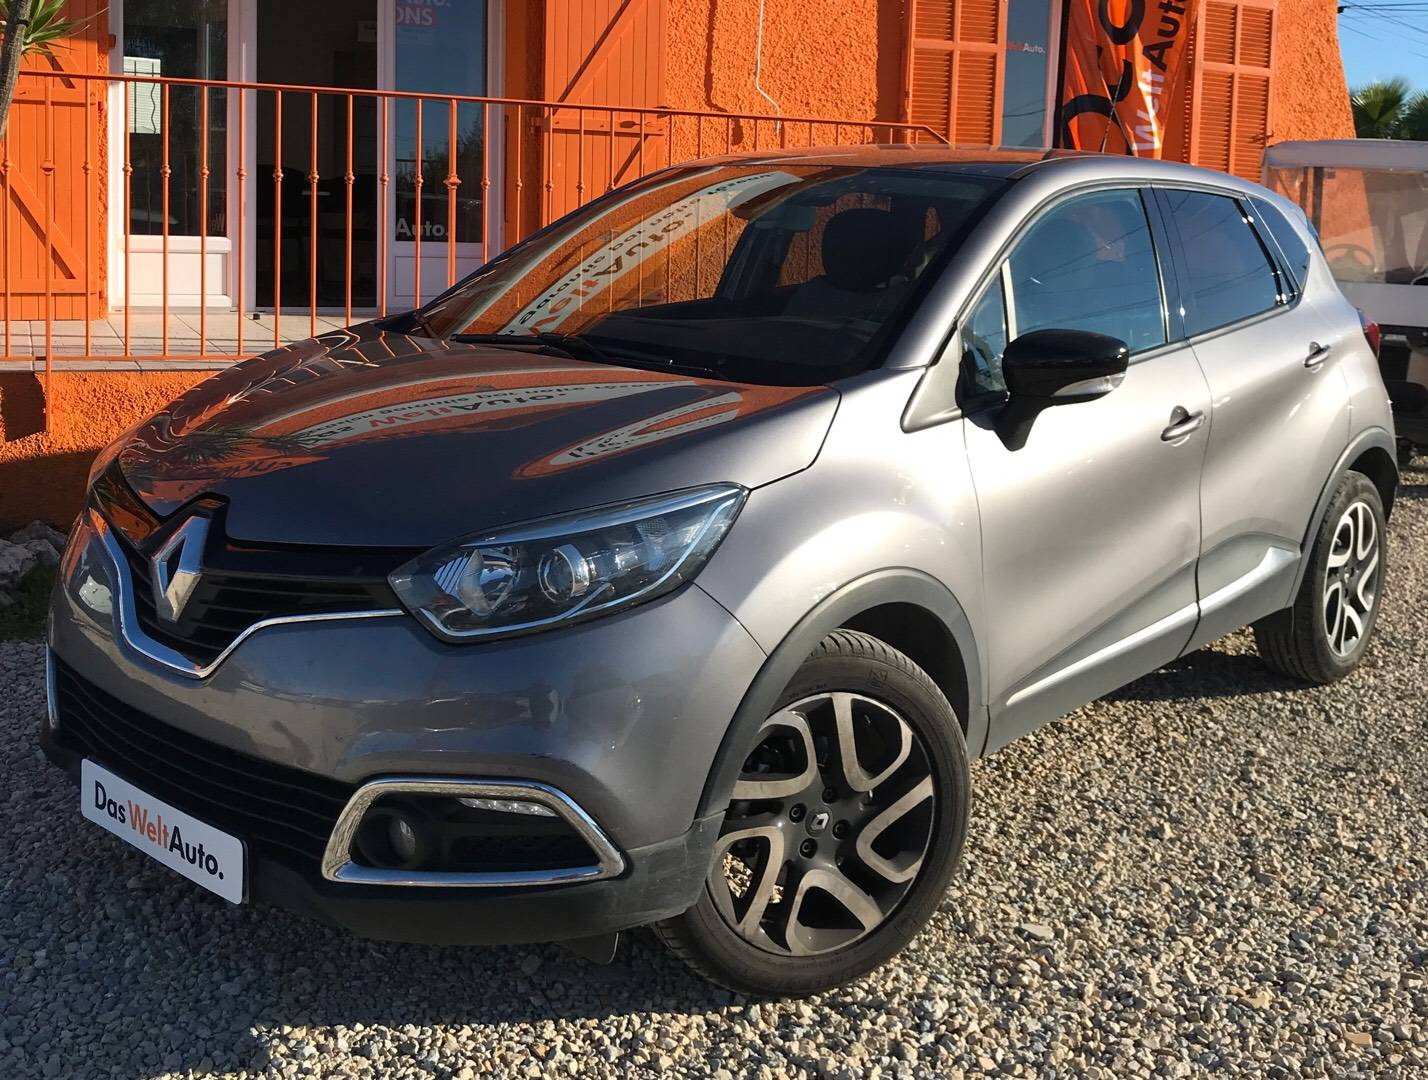 Captur dCi 90 Energy eco² E6